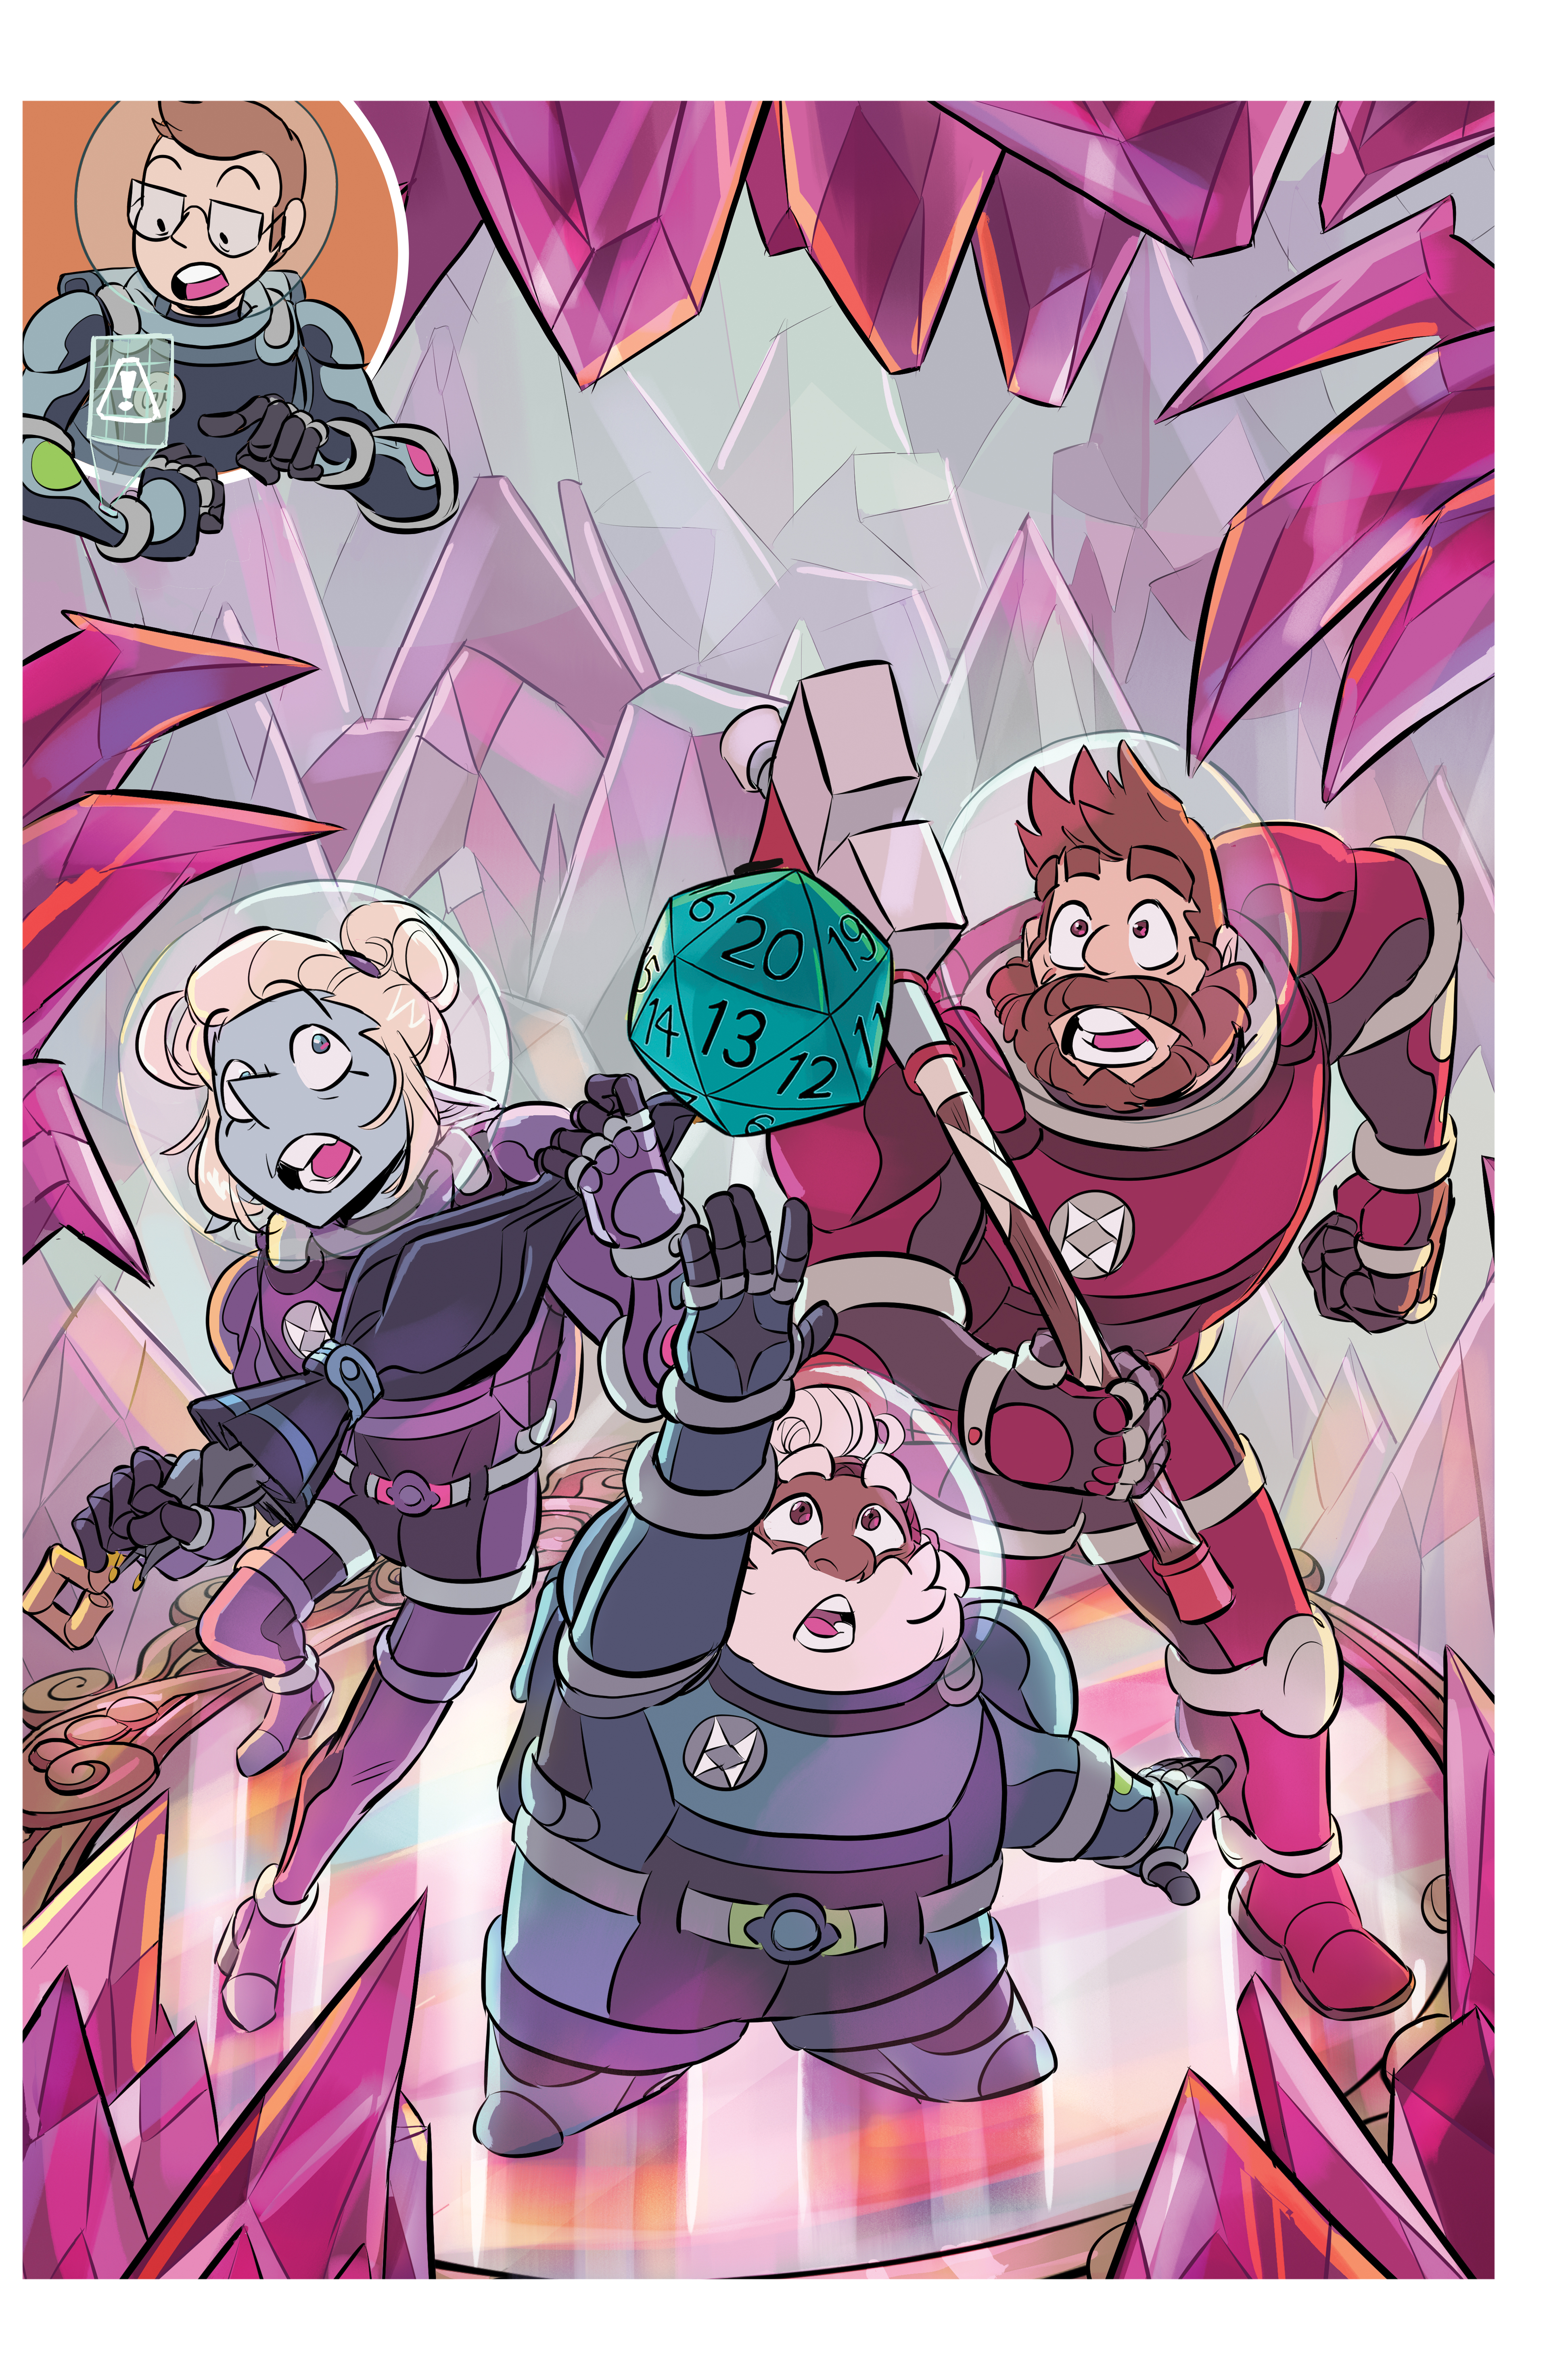 Taako, Merle, and Magnus are pursuing a d20 surrounded by pink tourmaline crystals. The three of them are wearing protective suits with glass helmets, standing on a pink tourmaline mirror.